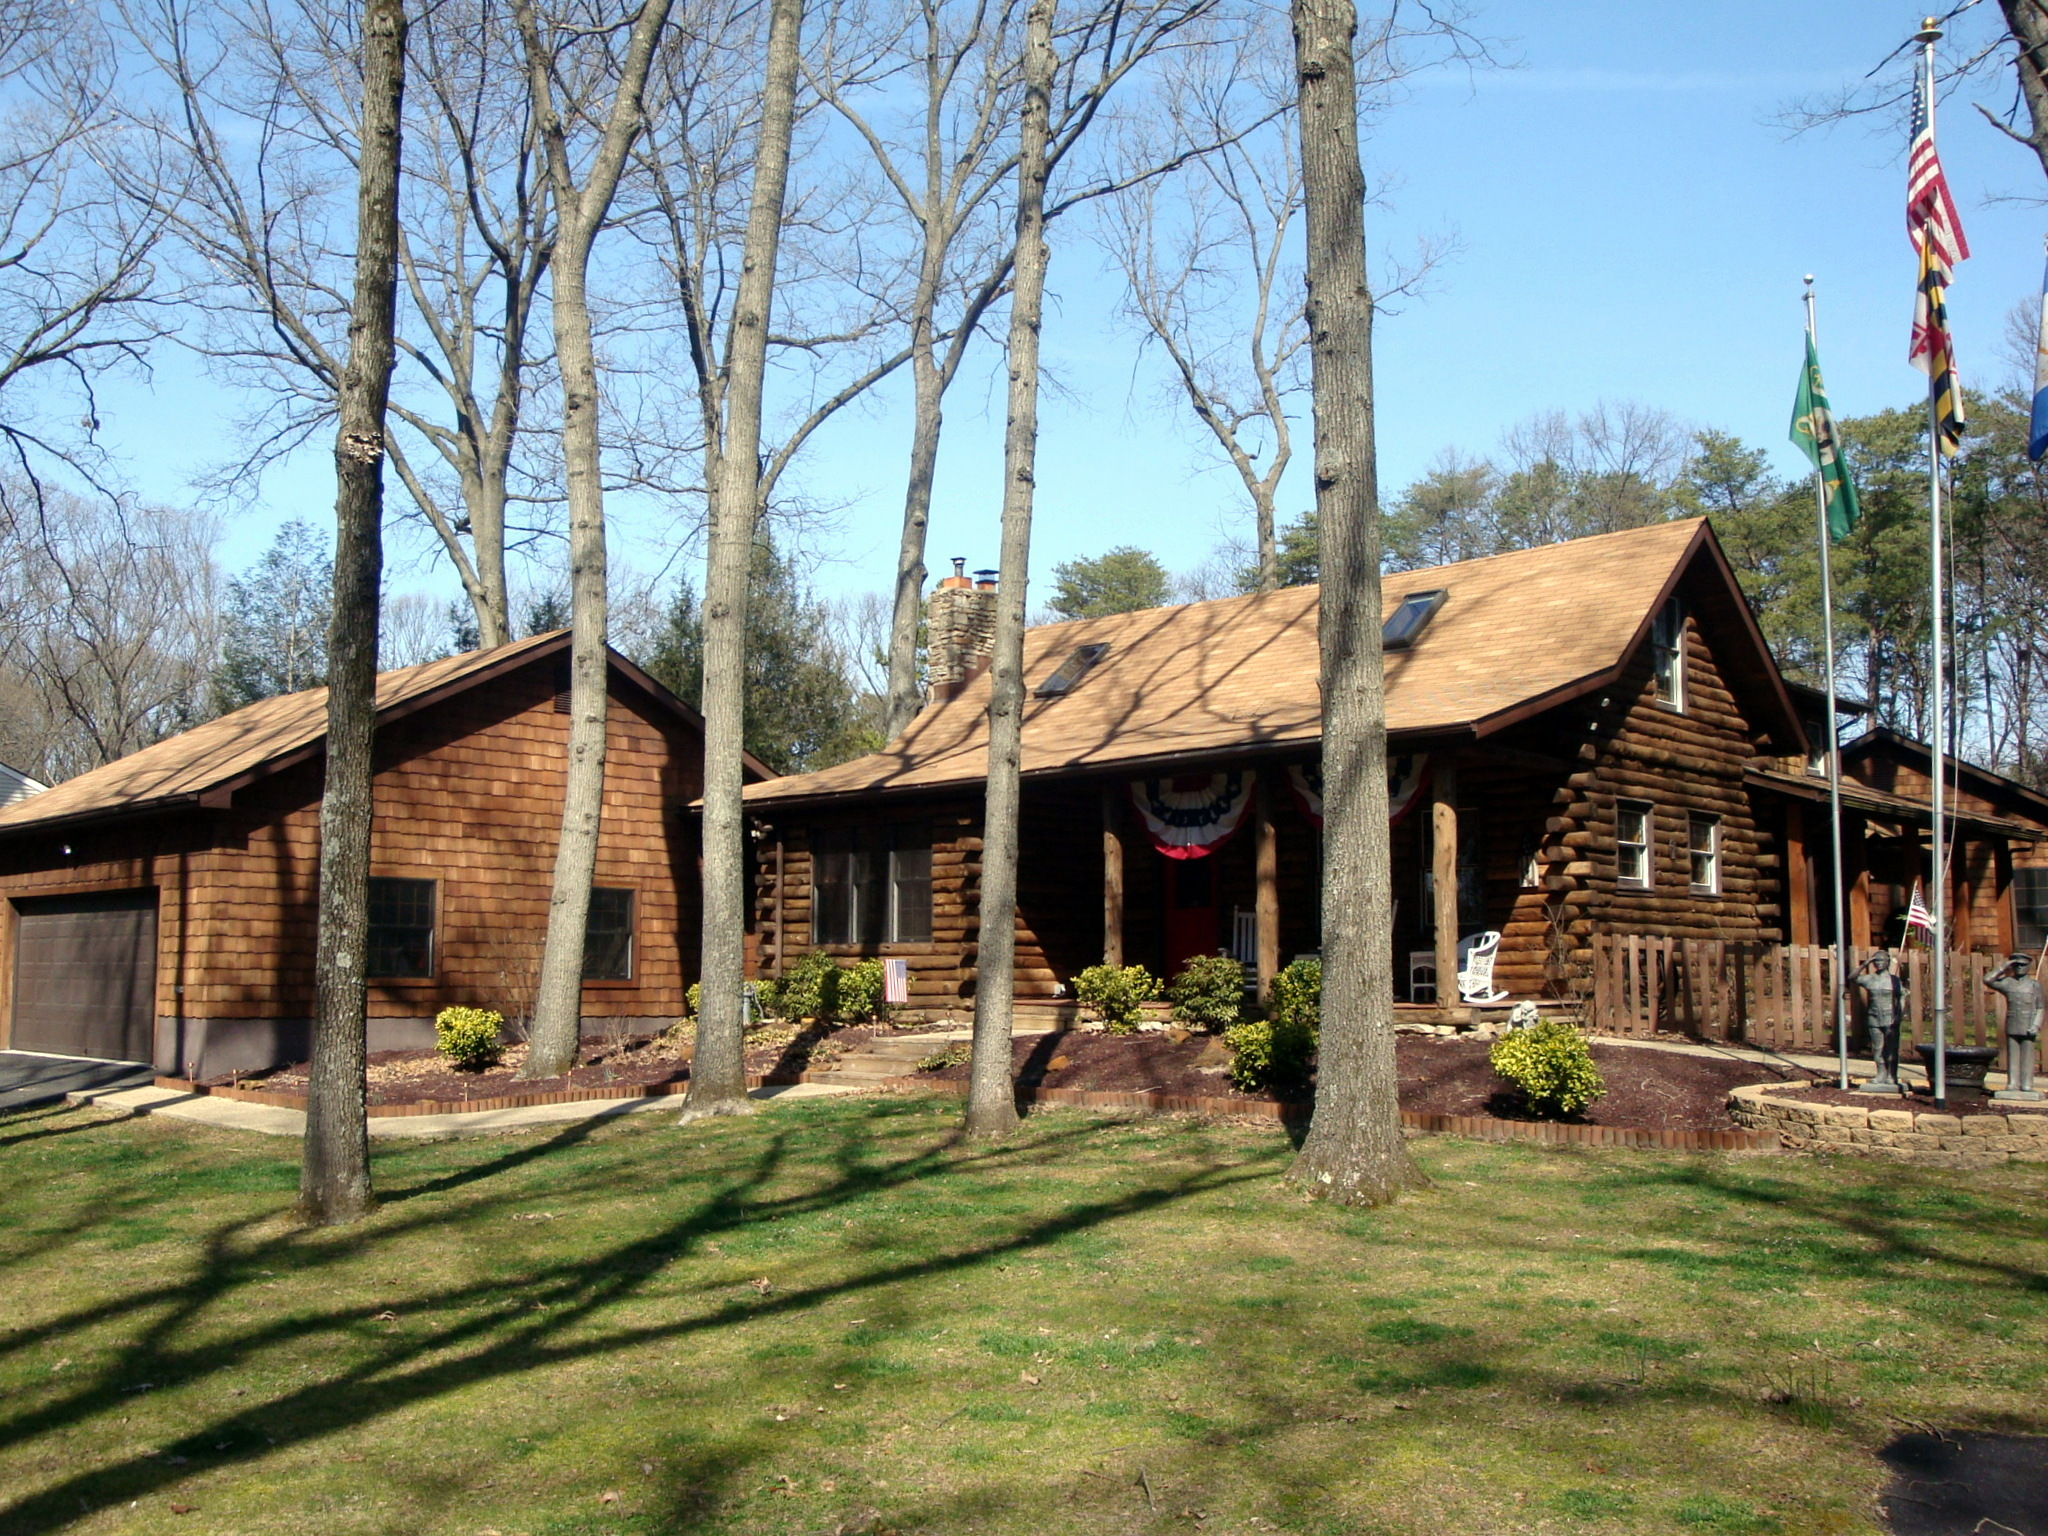 Log cabin for sale near annapolis md for Authentic log cabins for sale